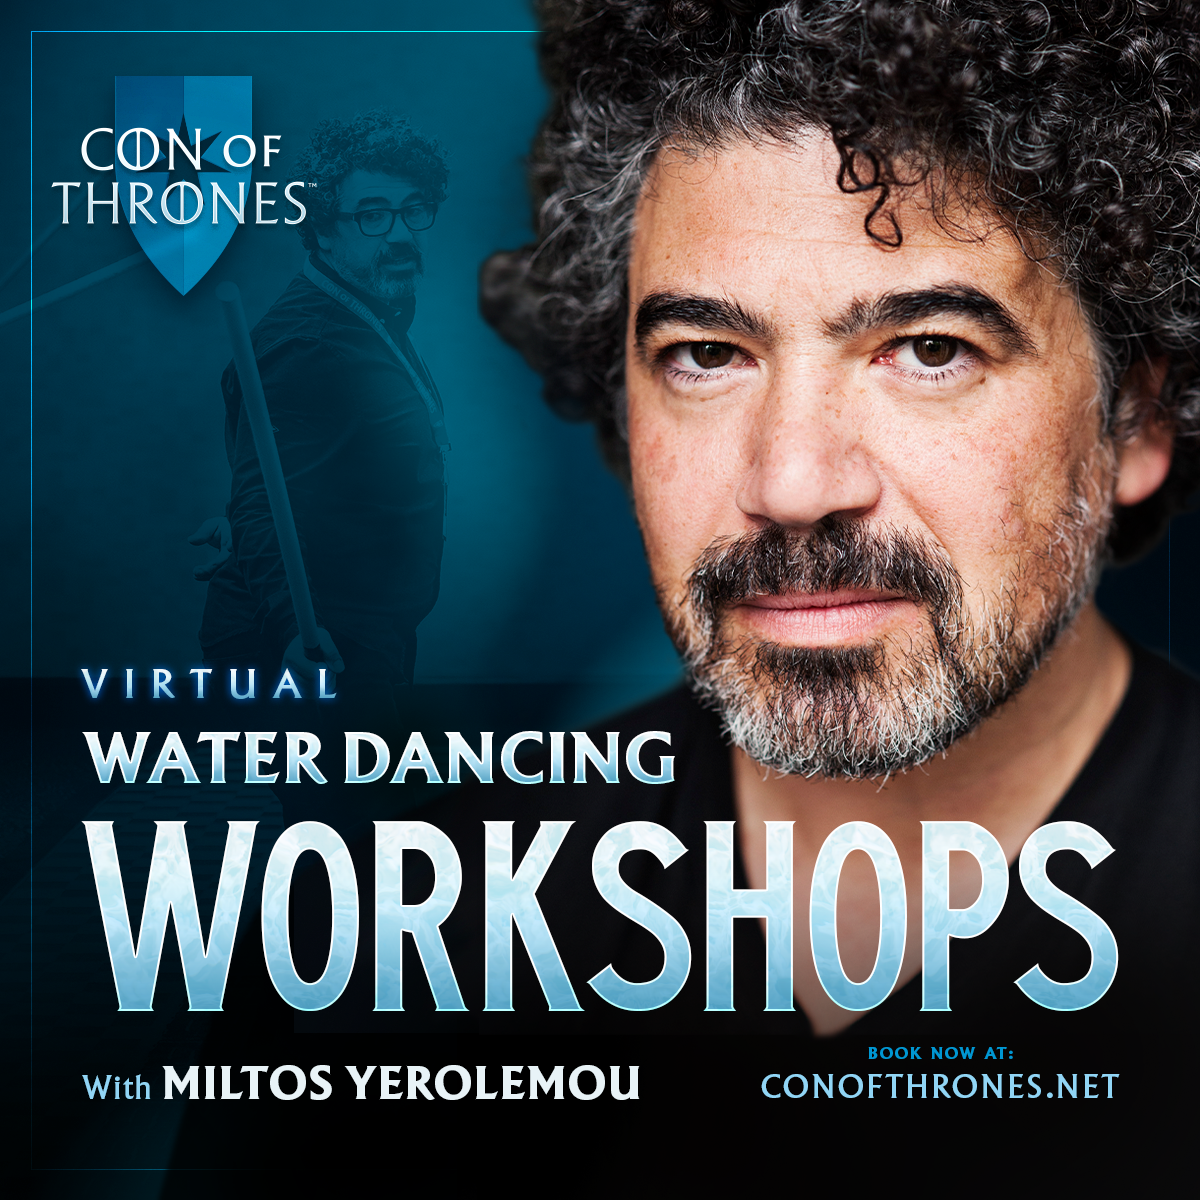 Learn the art of Water Dancing with Game of Thrones star Miltos Yerolemou!